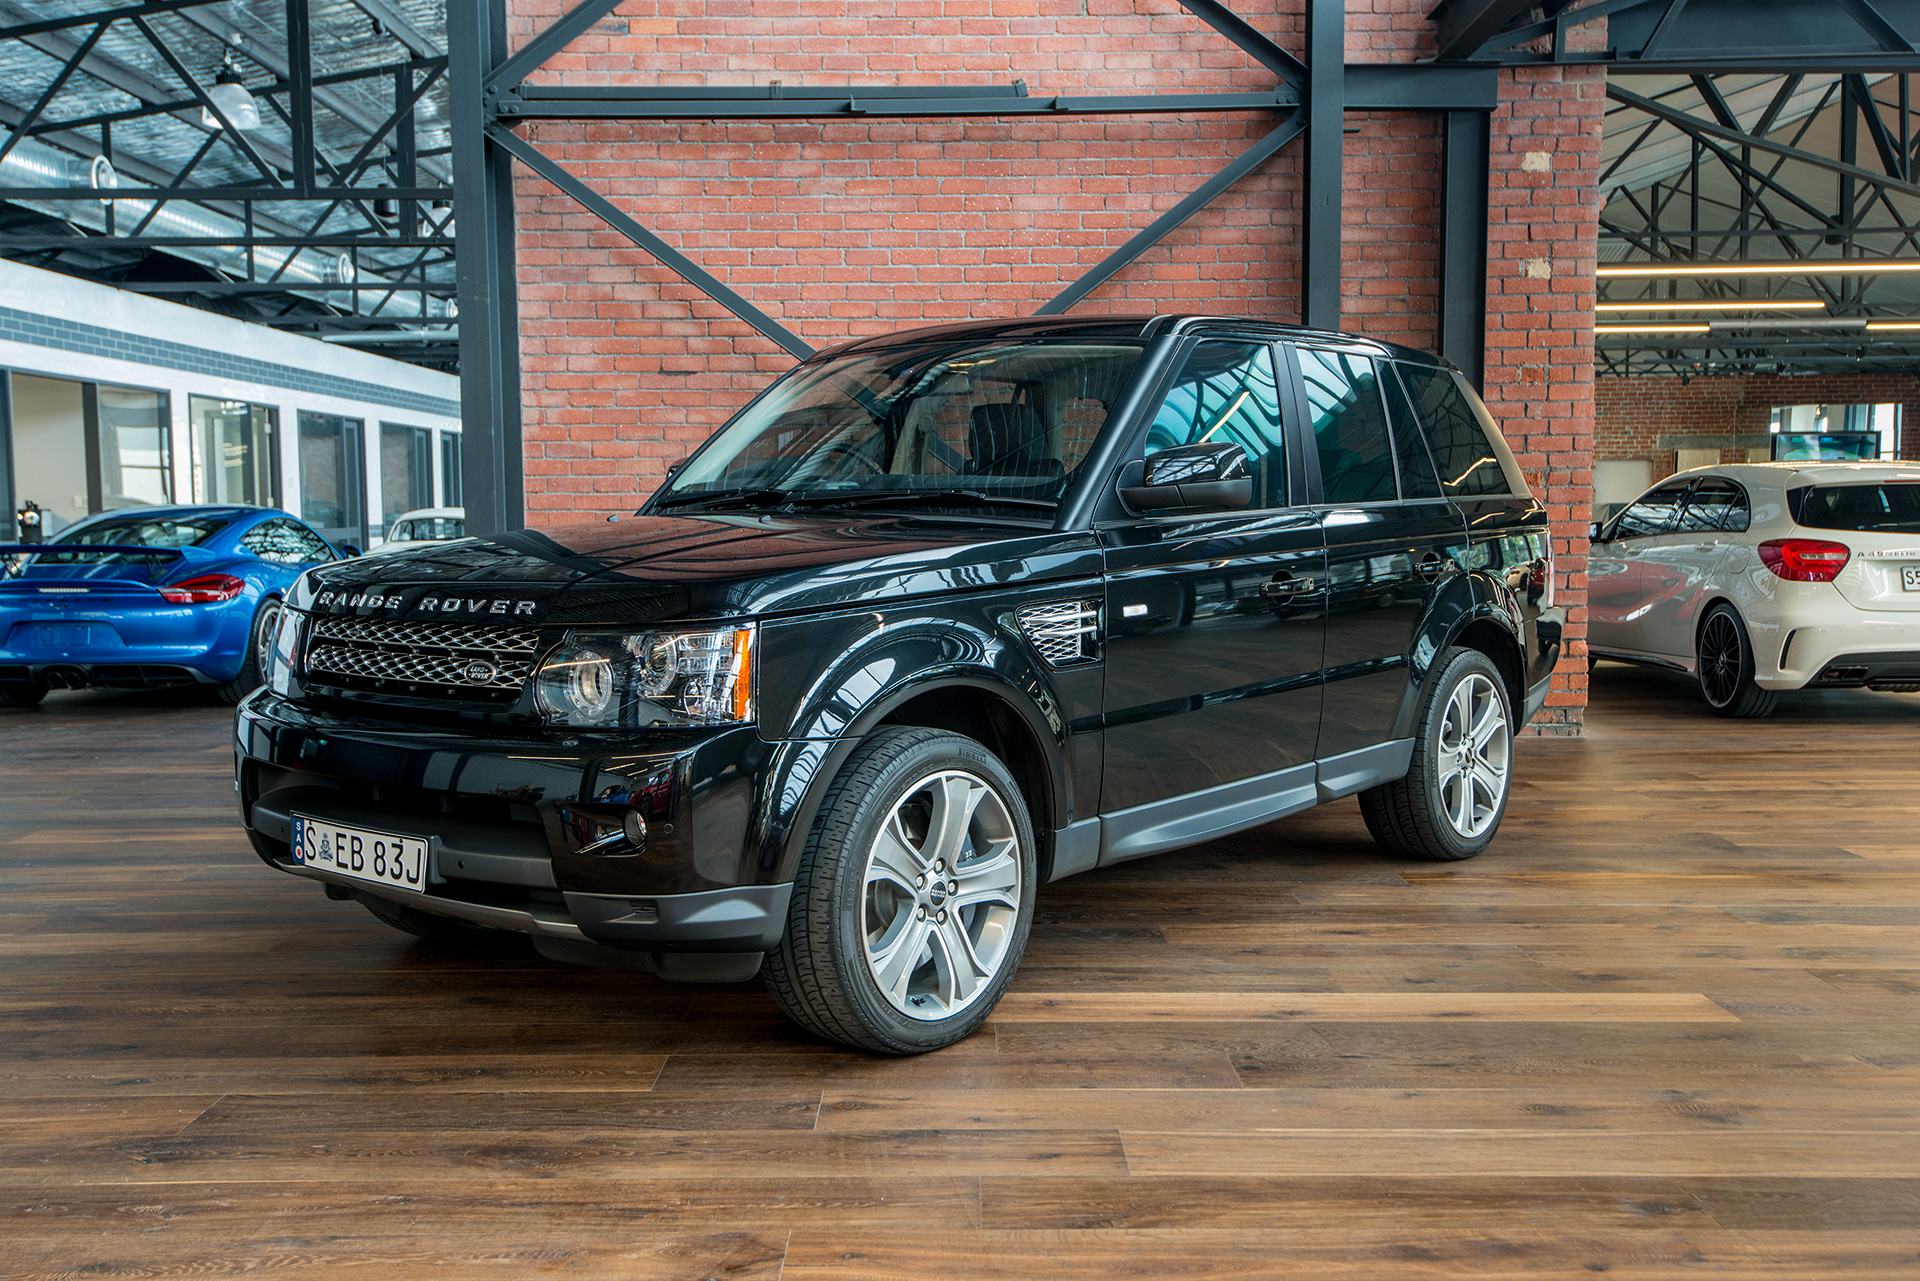 2012 land rover range rover sport richmonds classic. Black Bedroom Furniture Sets. Home Design Ideas